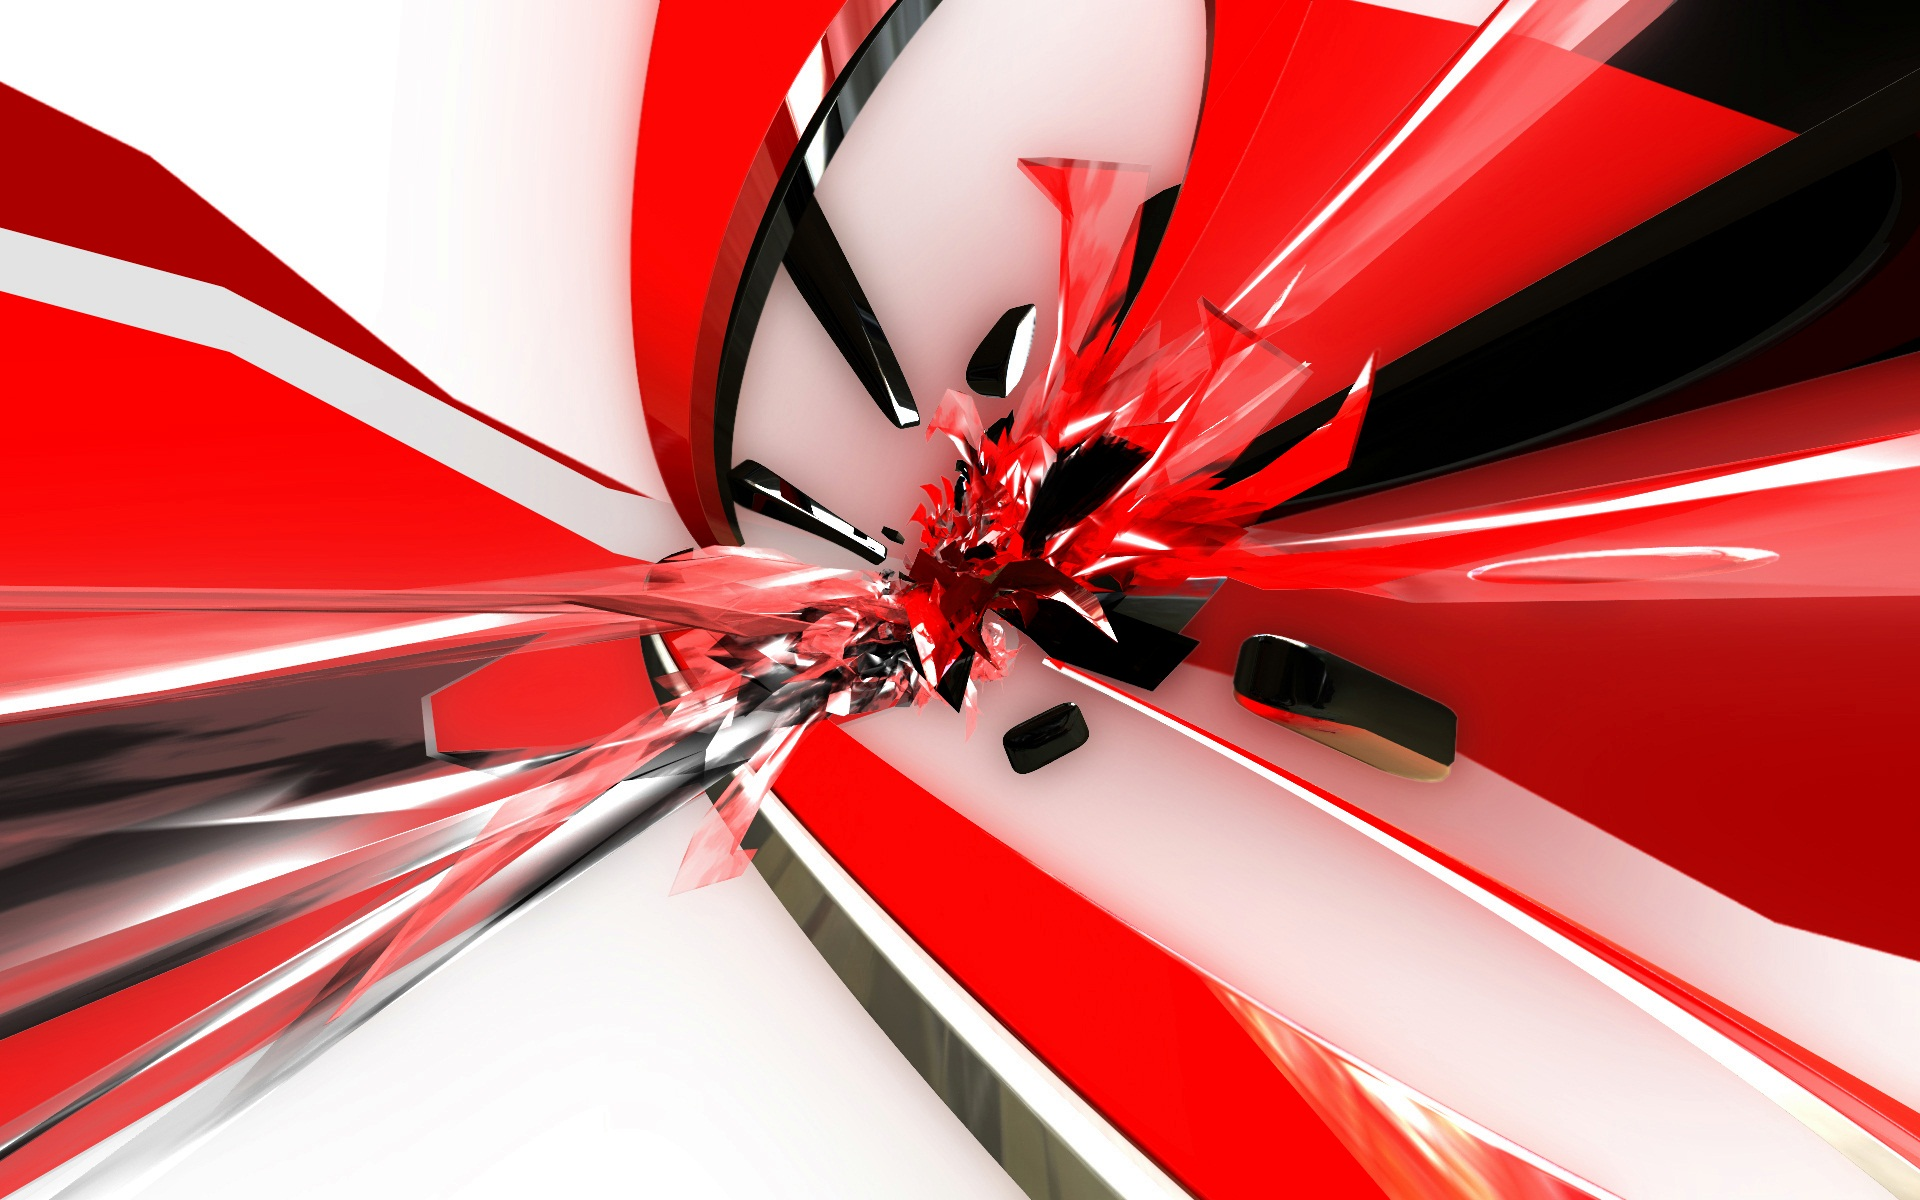 Cool 3d Wallpapers High Quality - Wickedsa com